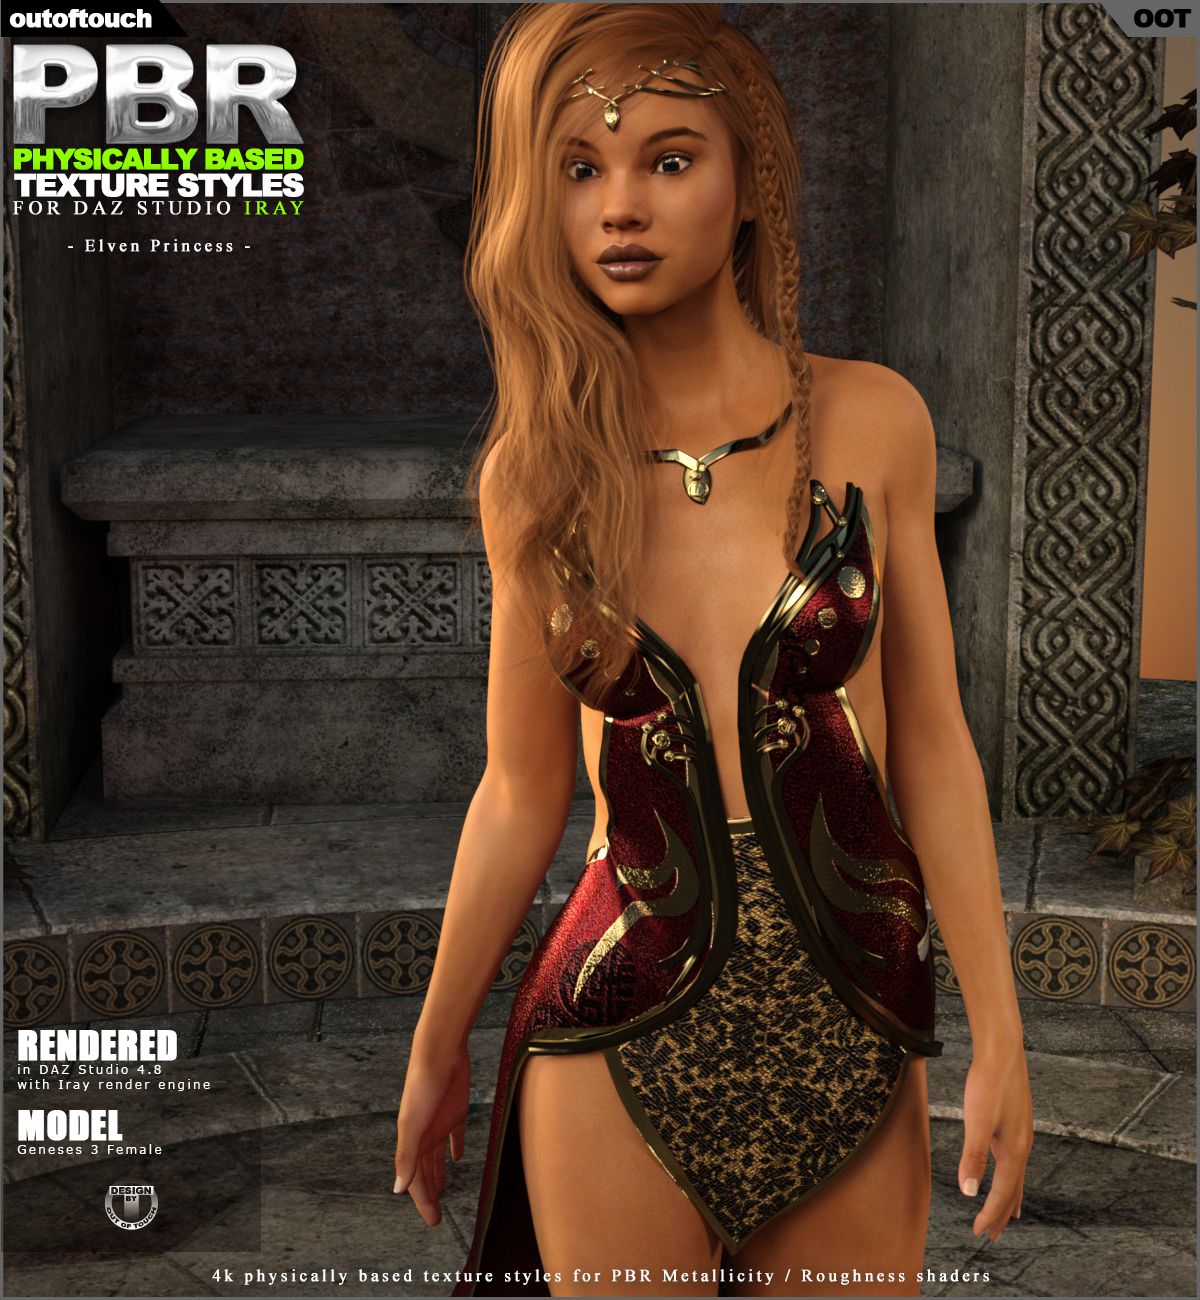 OOT PBR Texture Styles for Elven Princess